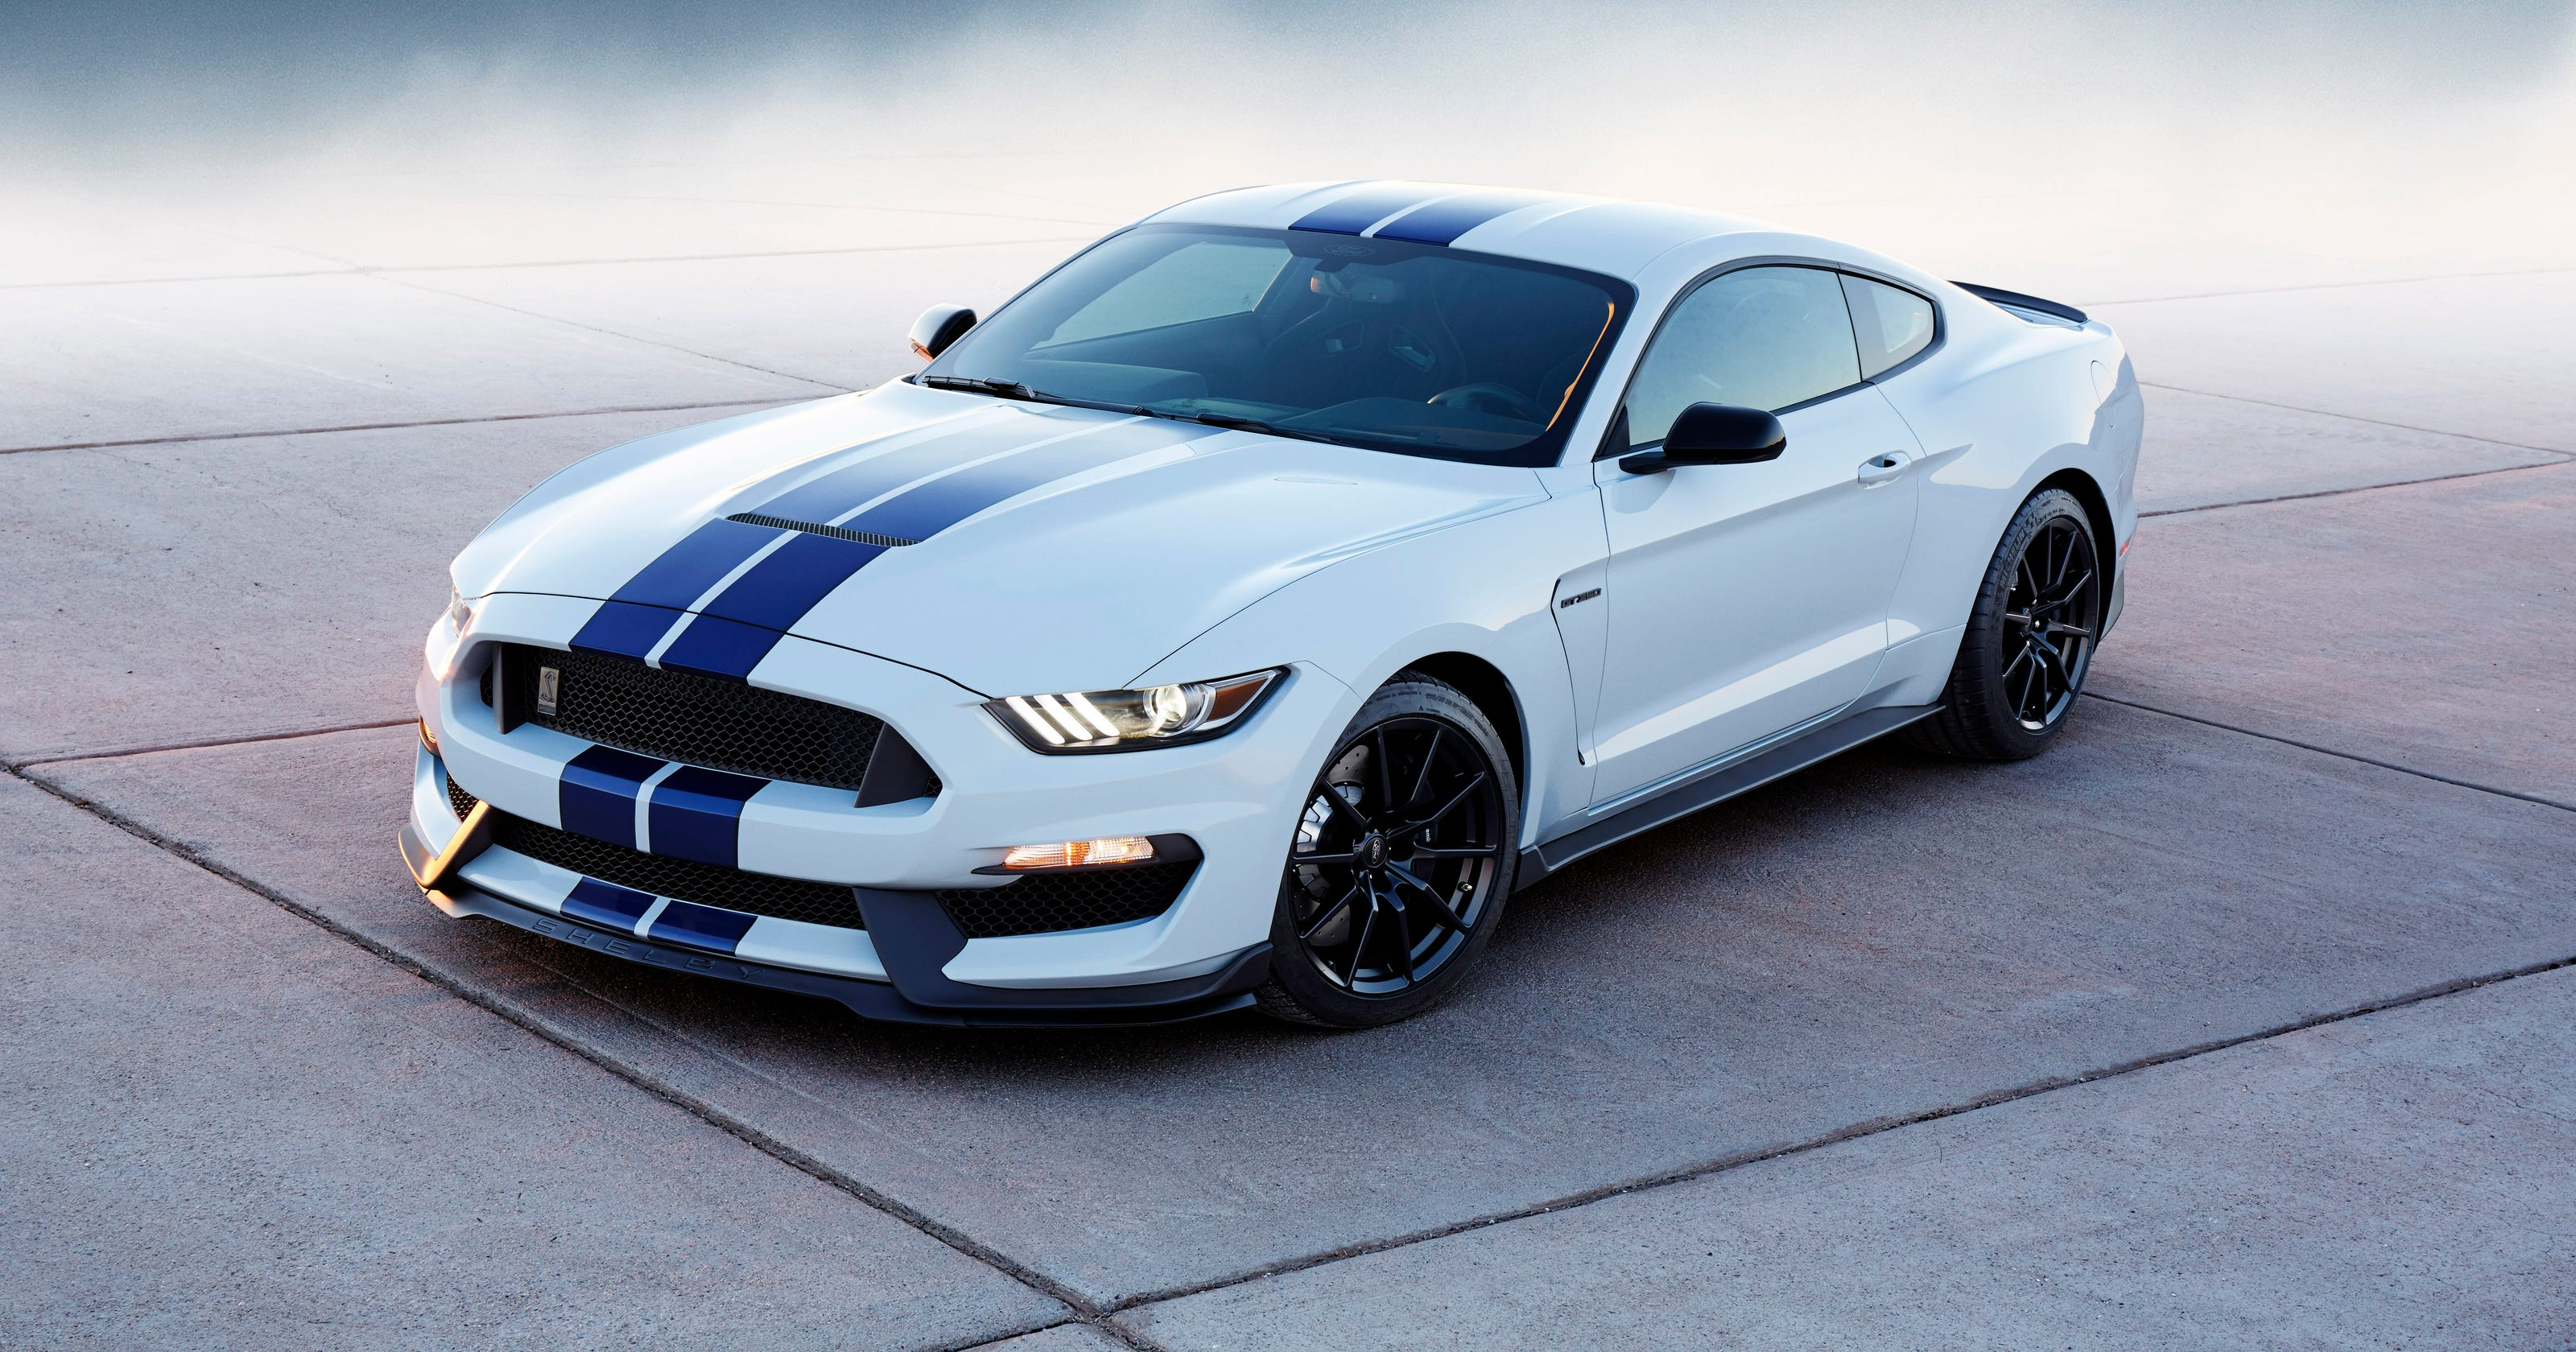 Mustang GT350 gets exotic 500-hp V-8, reshaped front